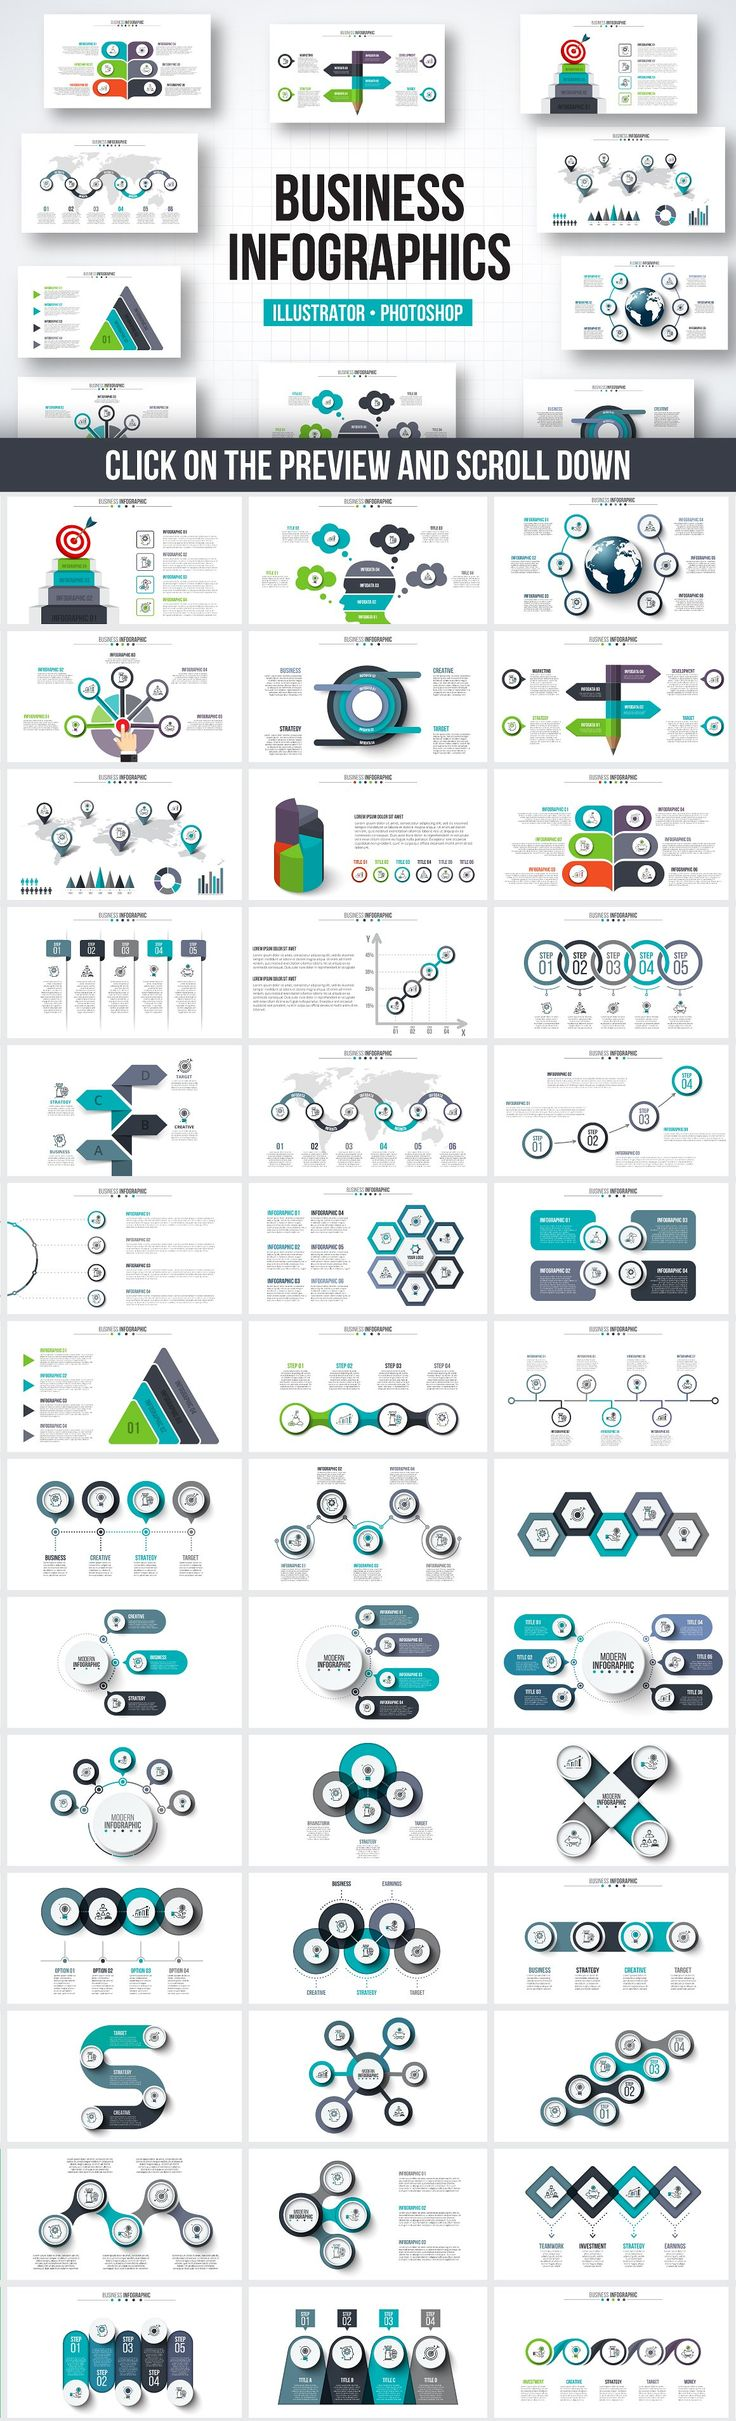 25 trending powerpoint timeline slide ideas on pinterest infographic templates bundle creative business marketing vector illustrator photoshop design template by abert on toneelgroepblik Image collections